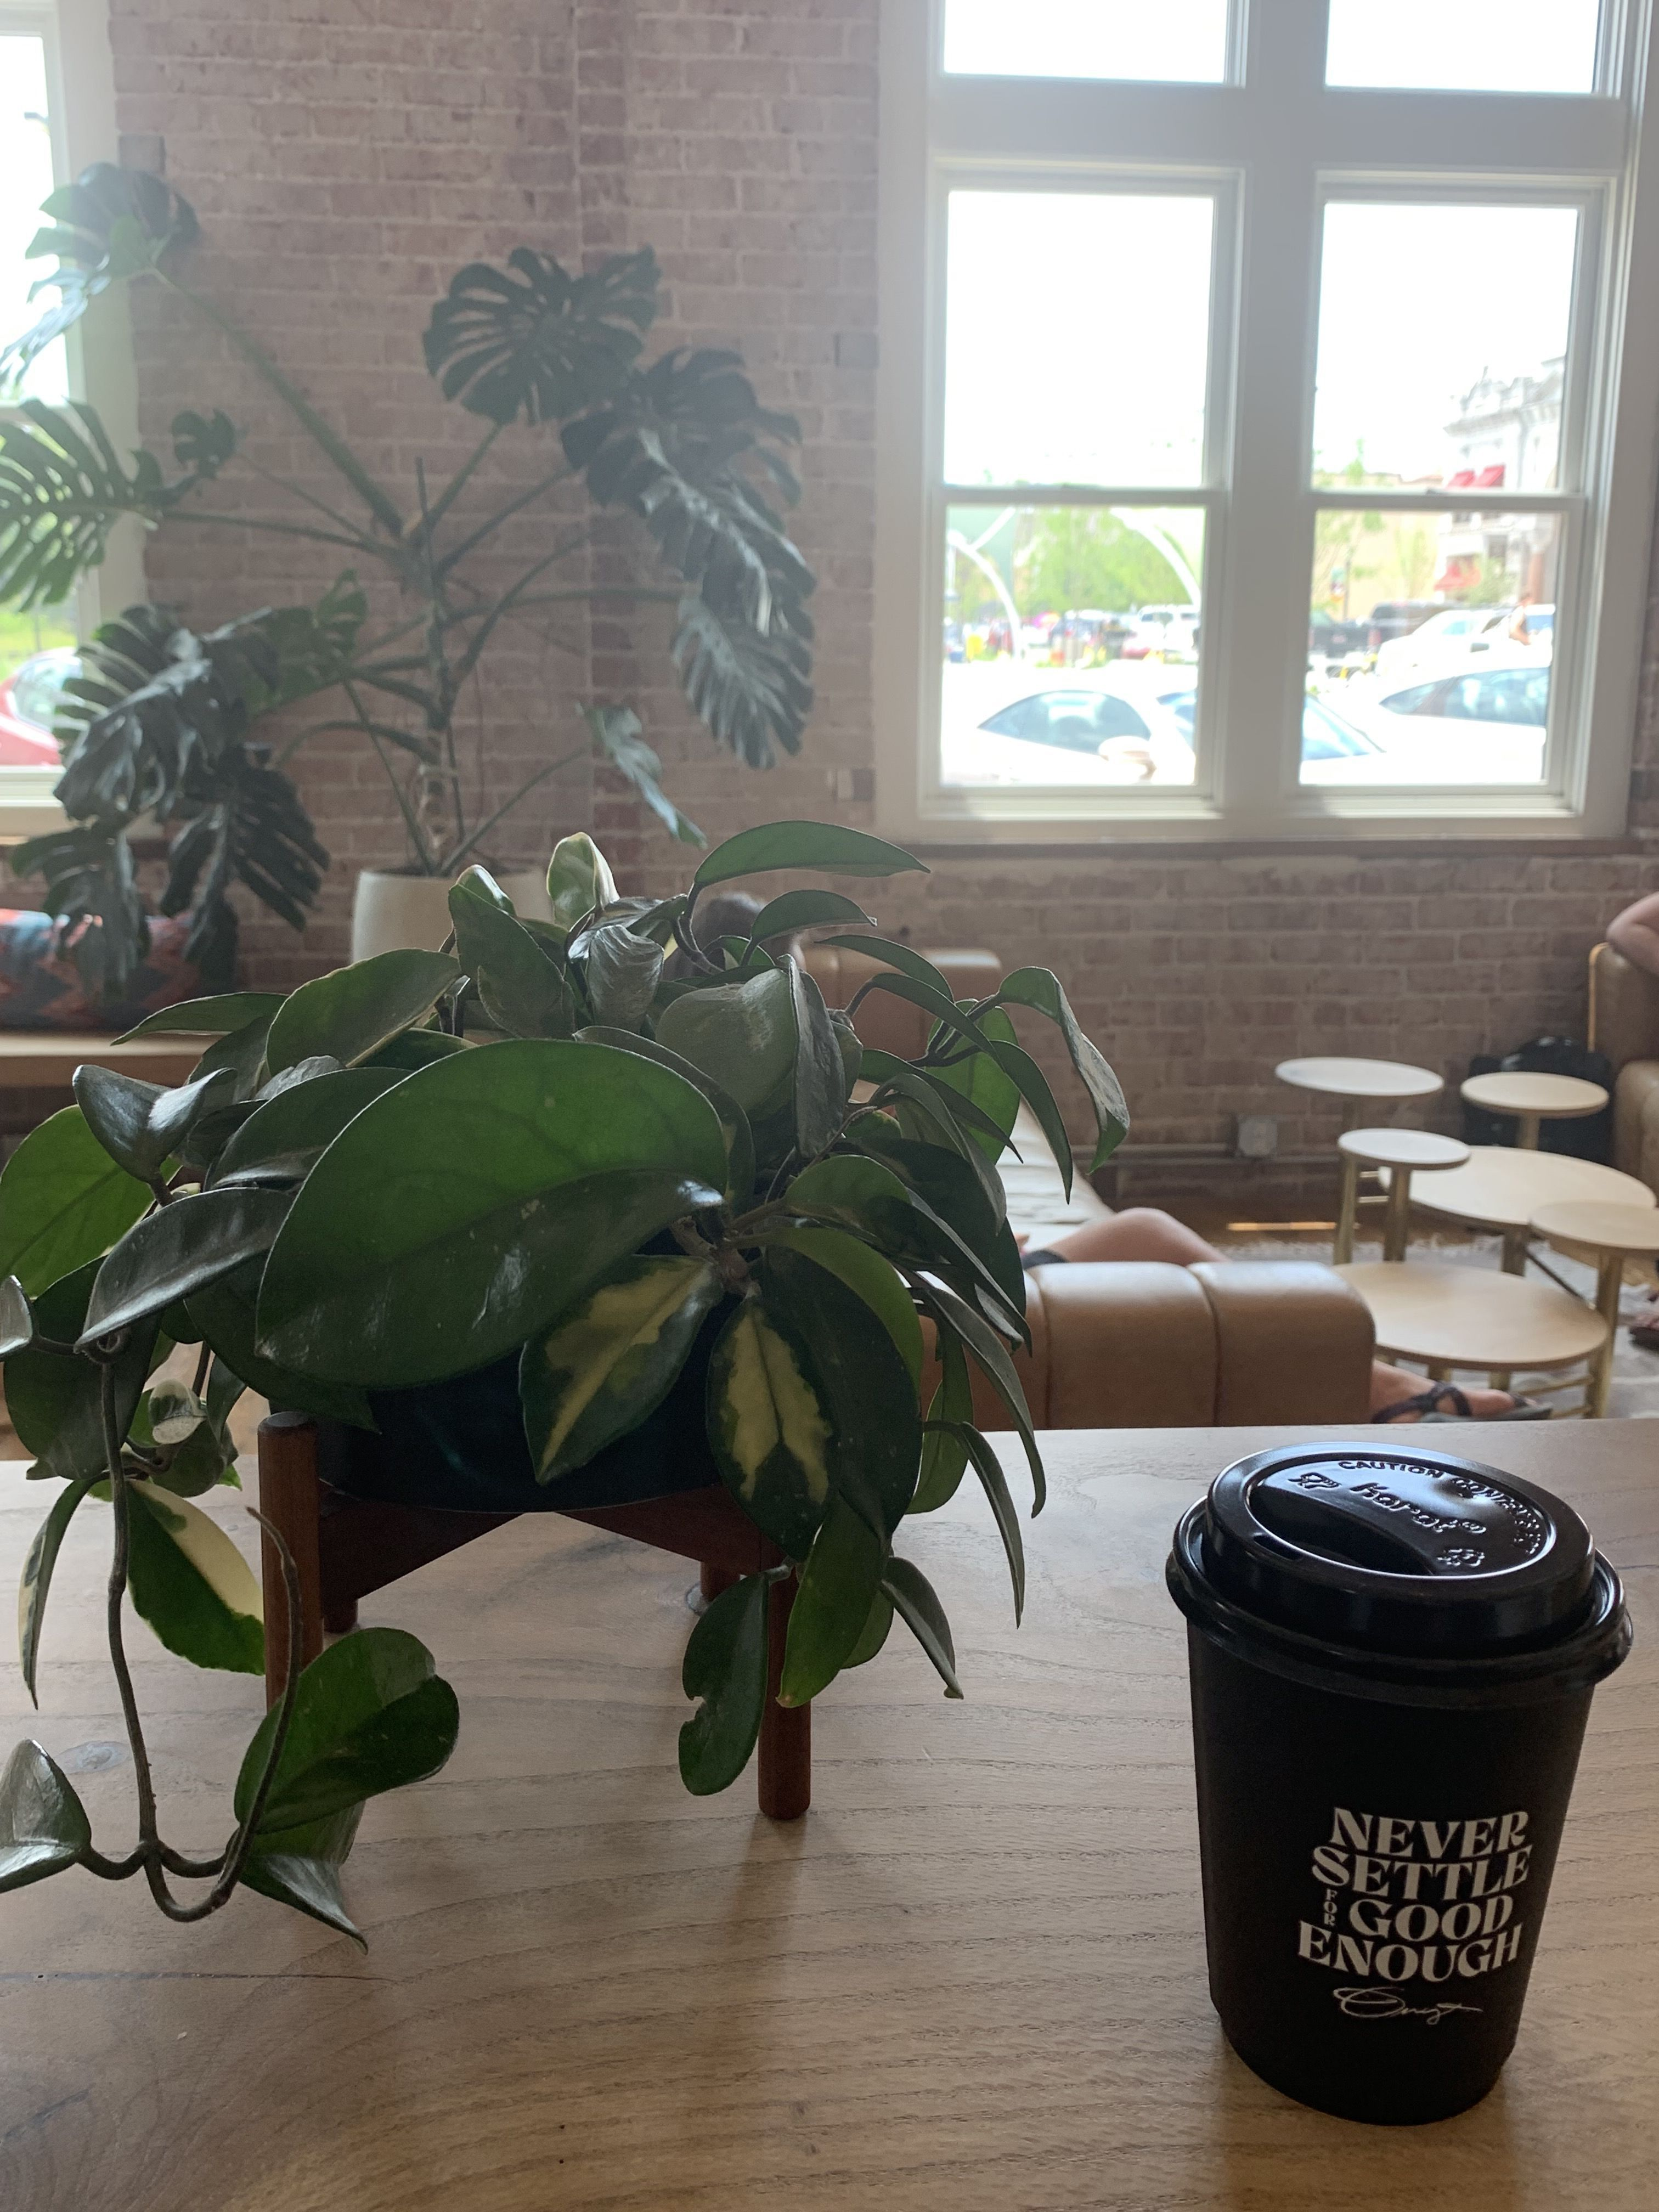 A cup of coffee sits on a wooden table next to a plant